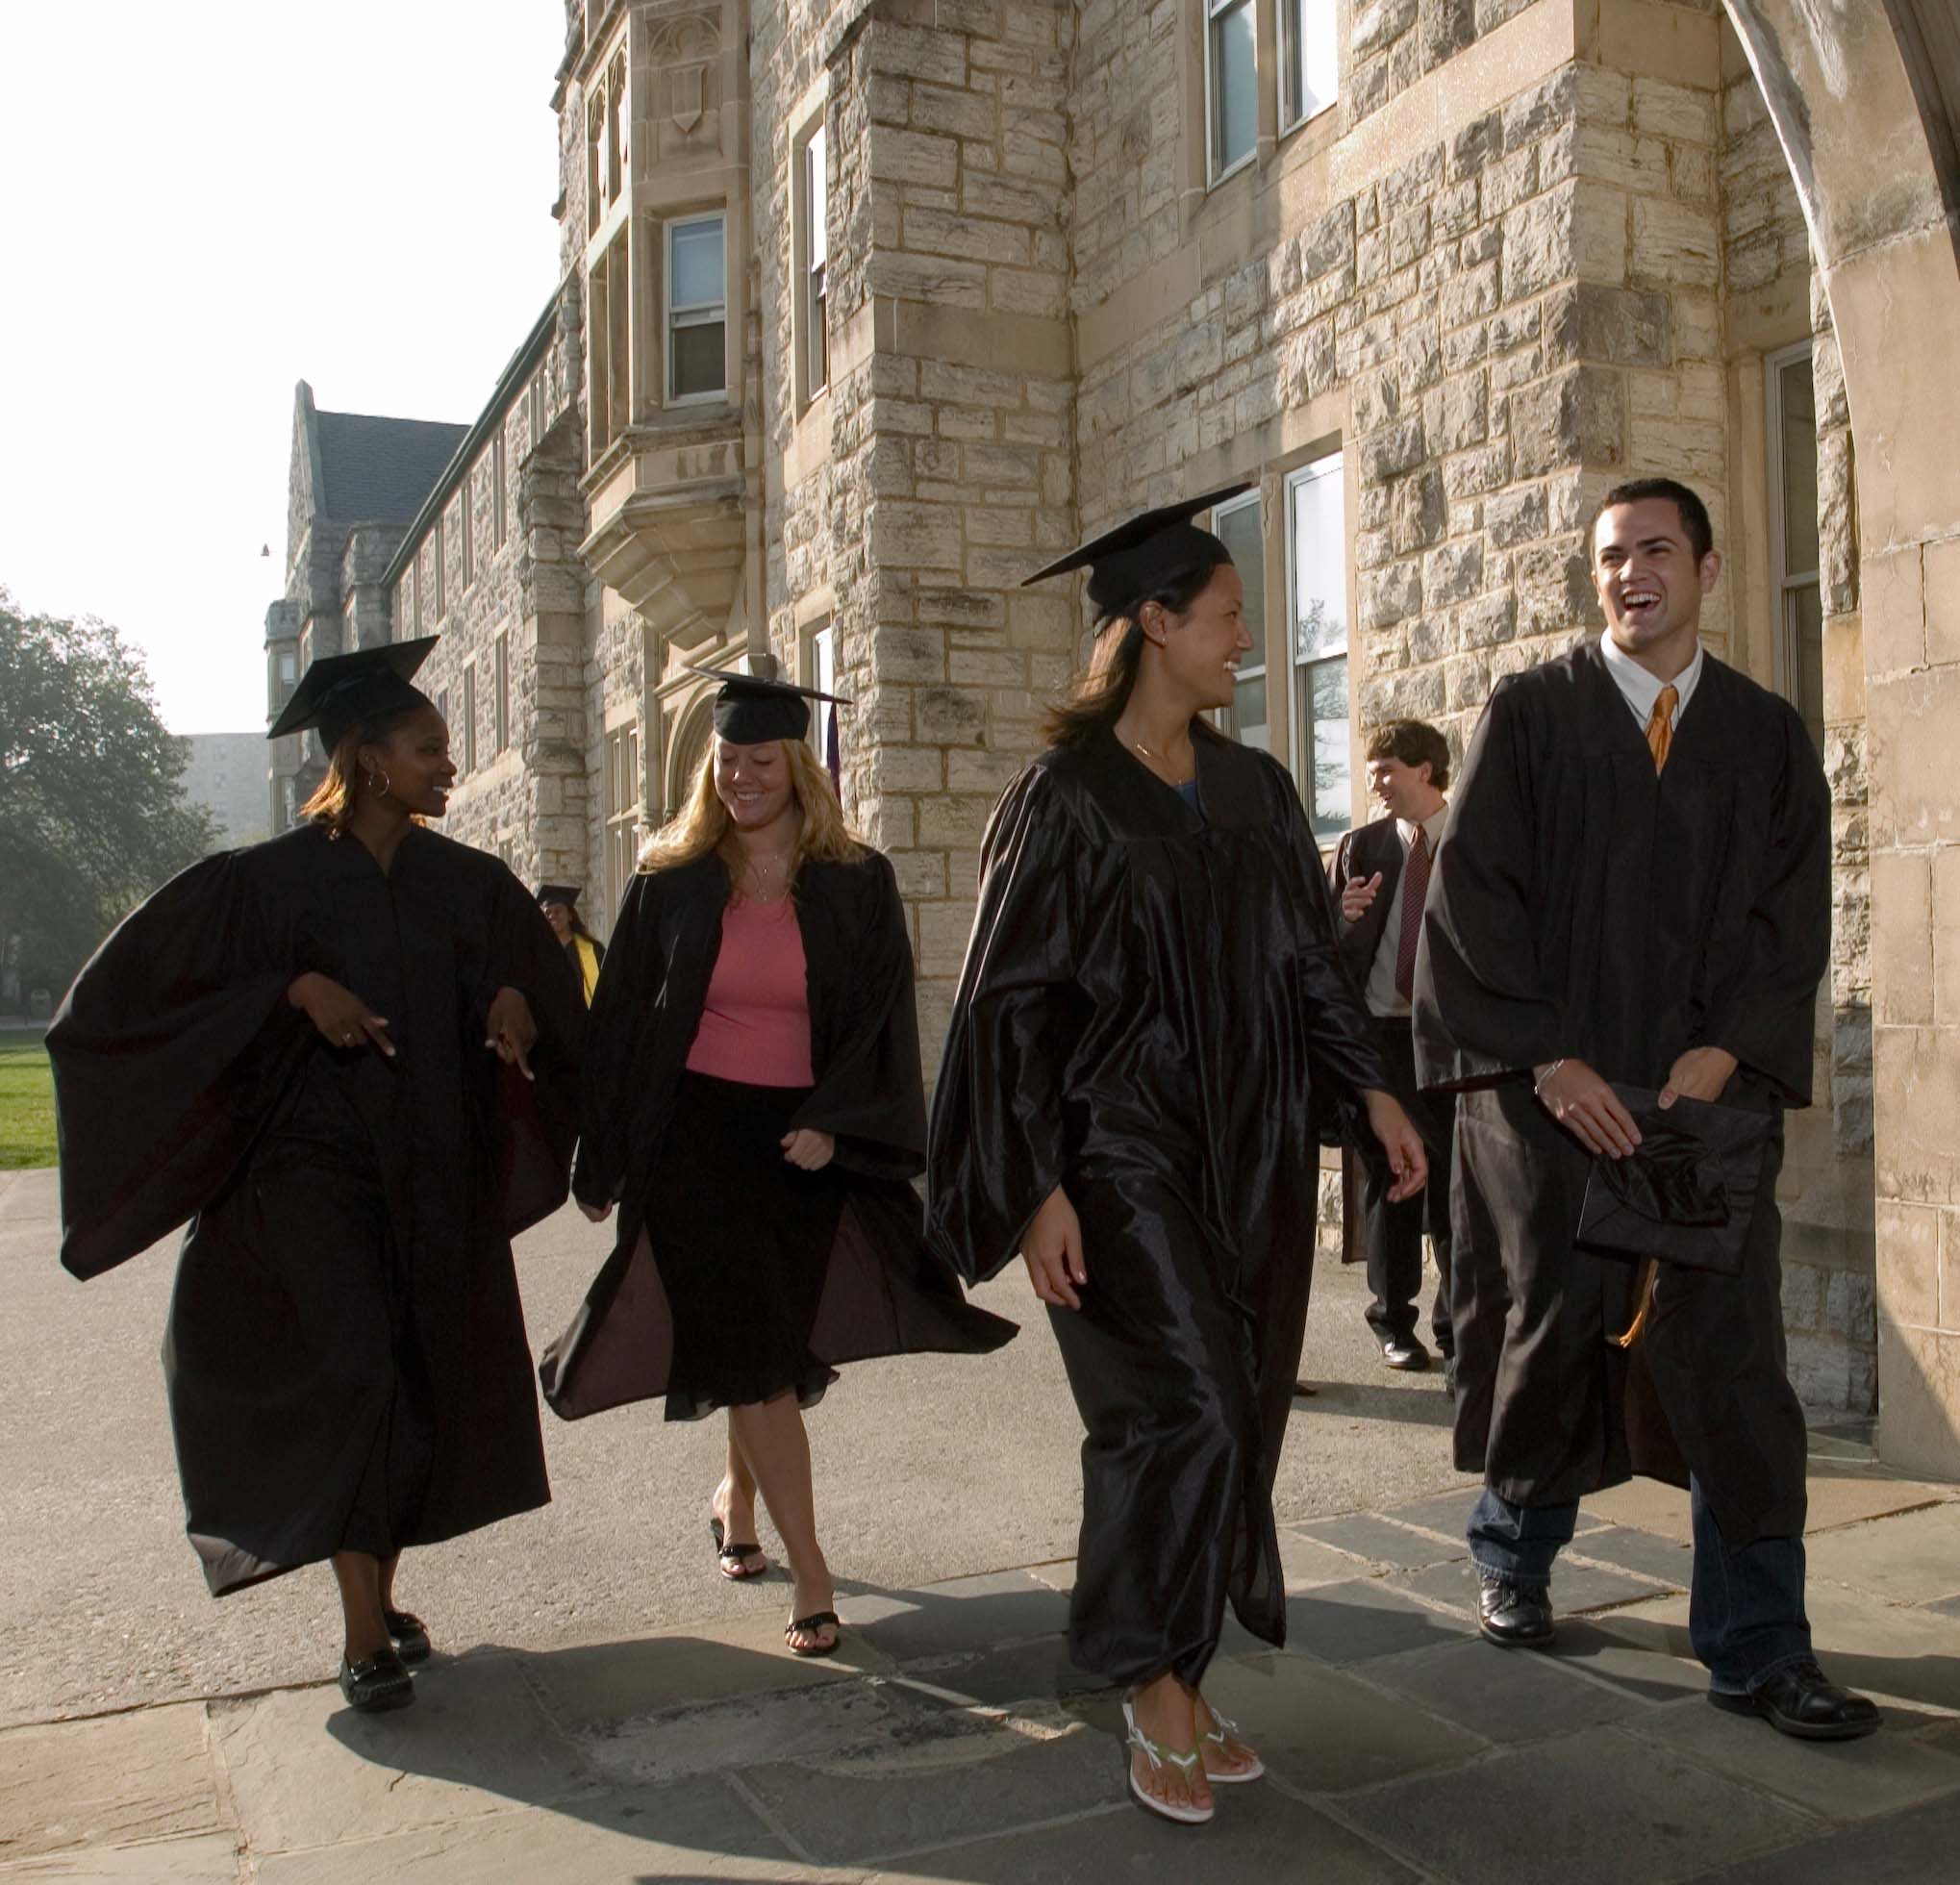 Virginia Tech students in cap and gown